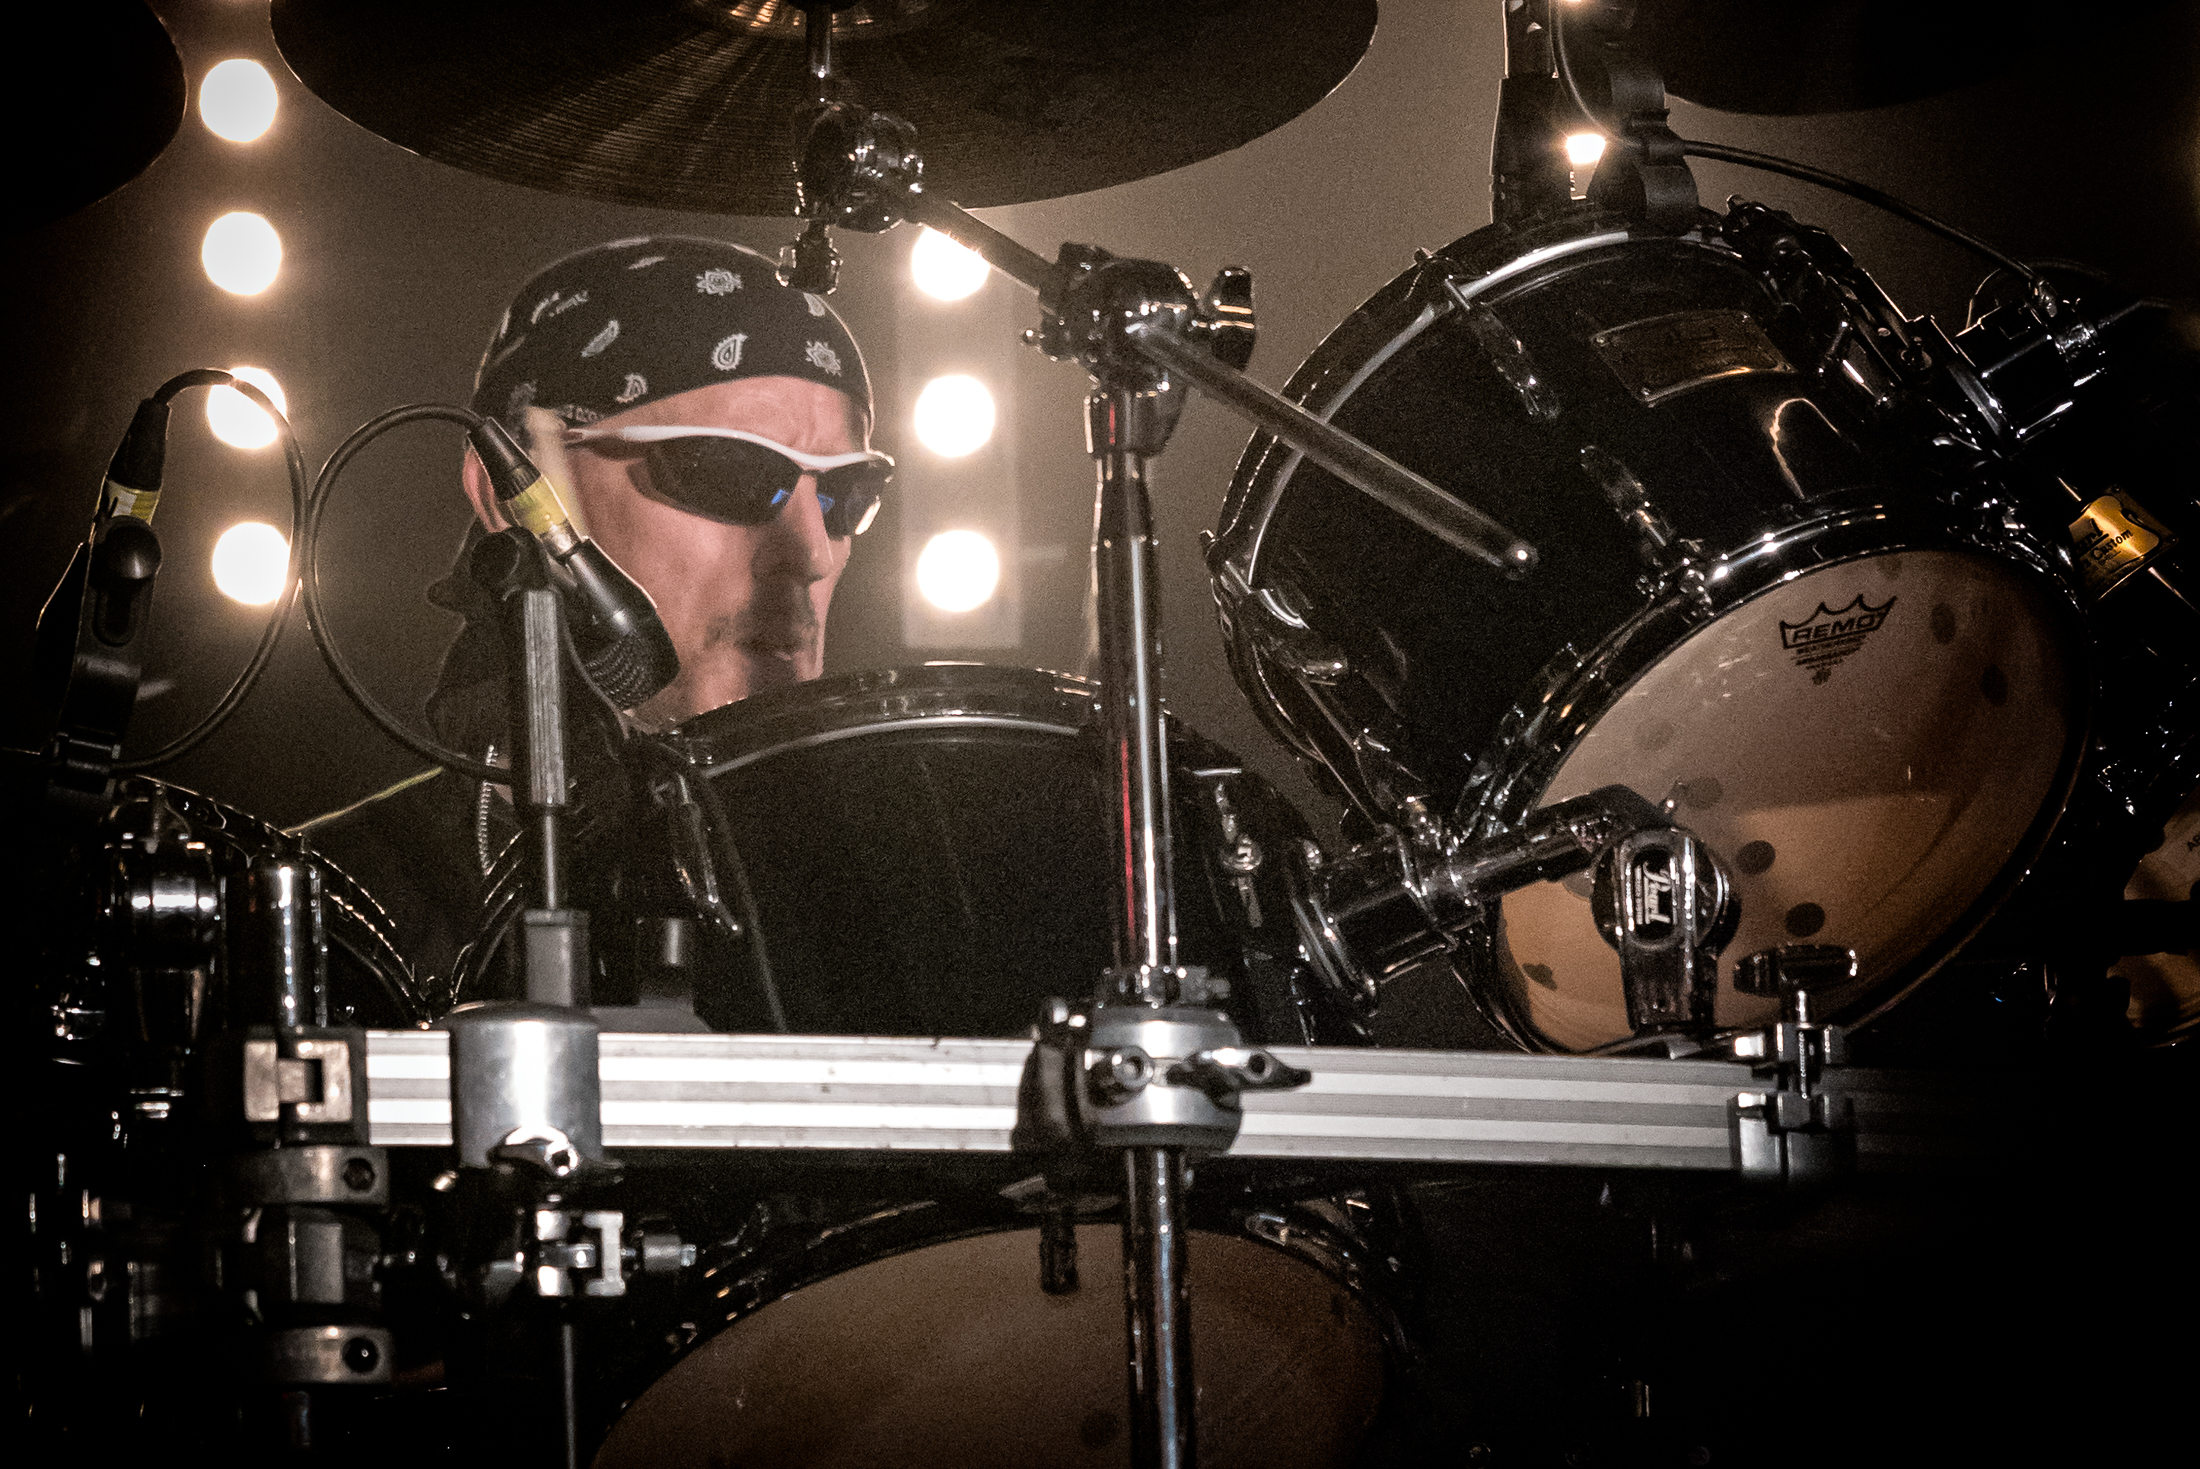 queensryche - melbourne - 2016 - paul tadday photography - 23.jpg